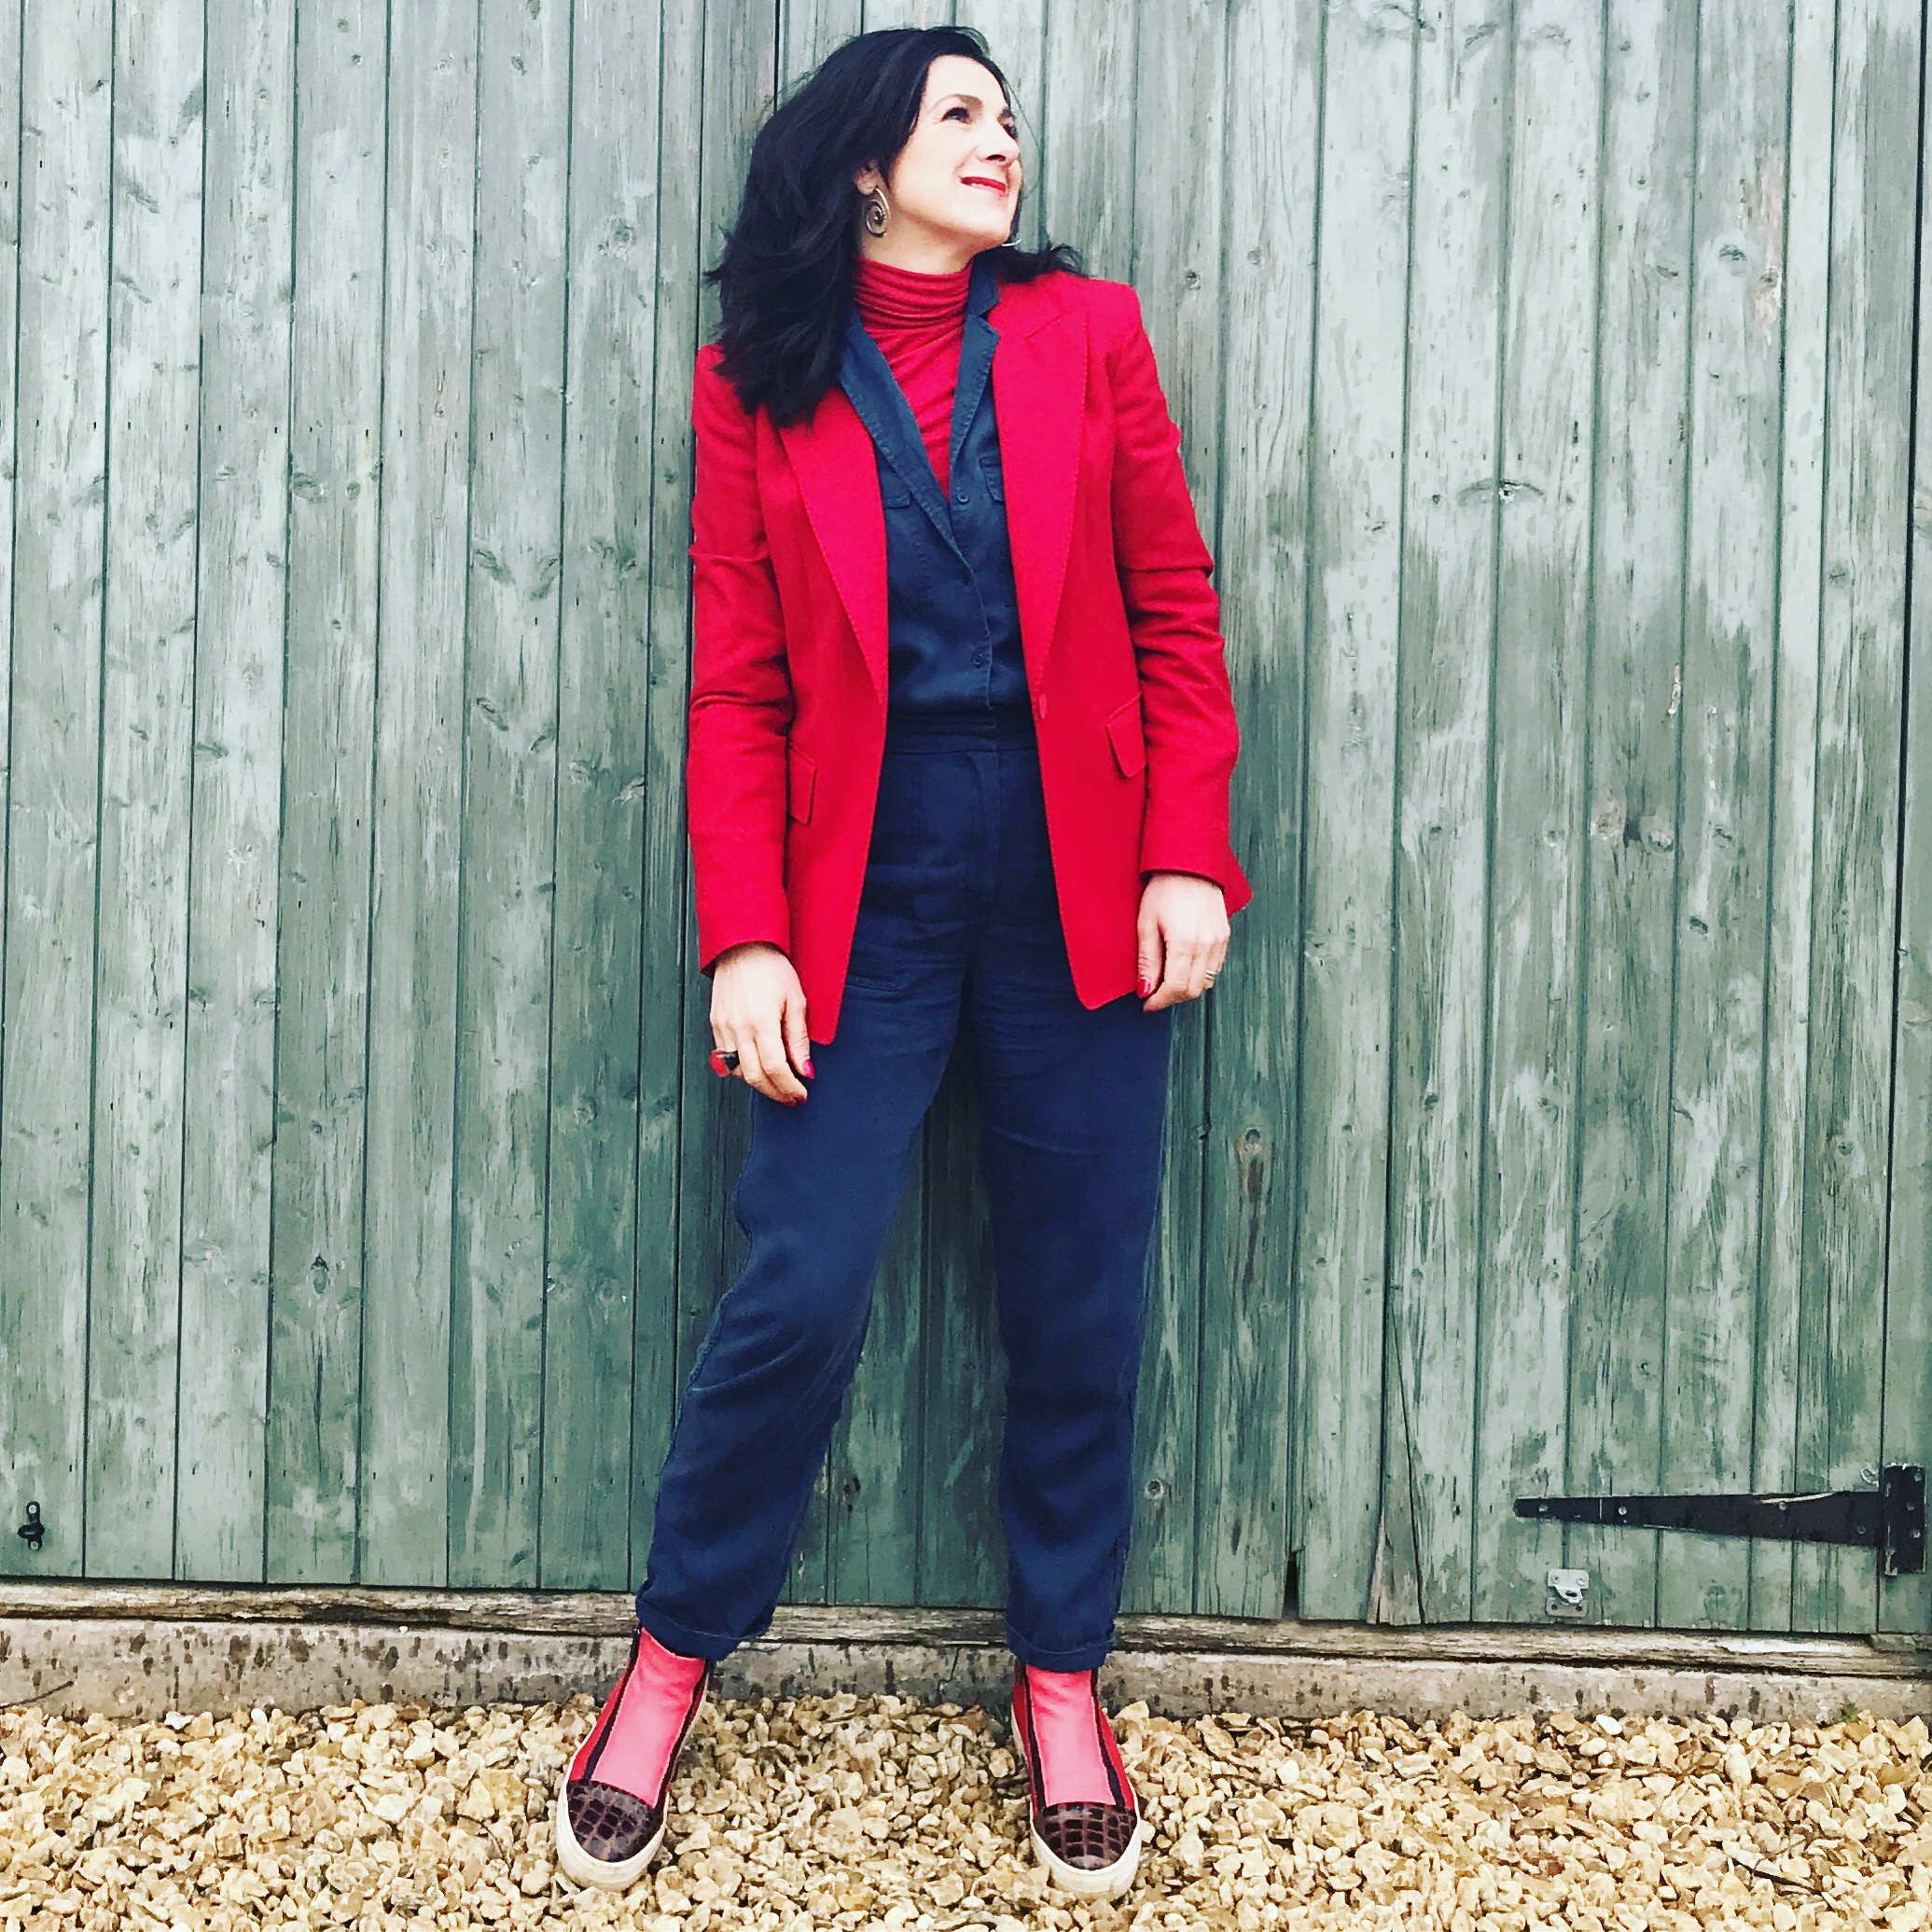 January 2019 given a sharp edge with bright red blazer and boots for work meetings,